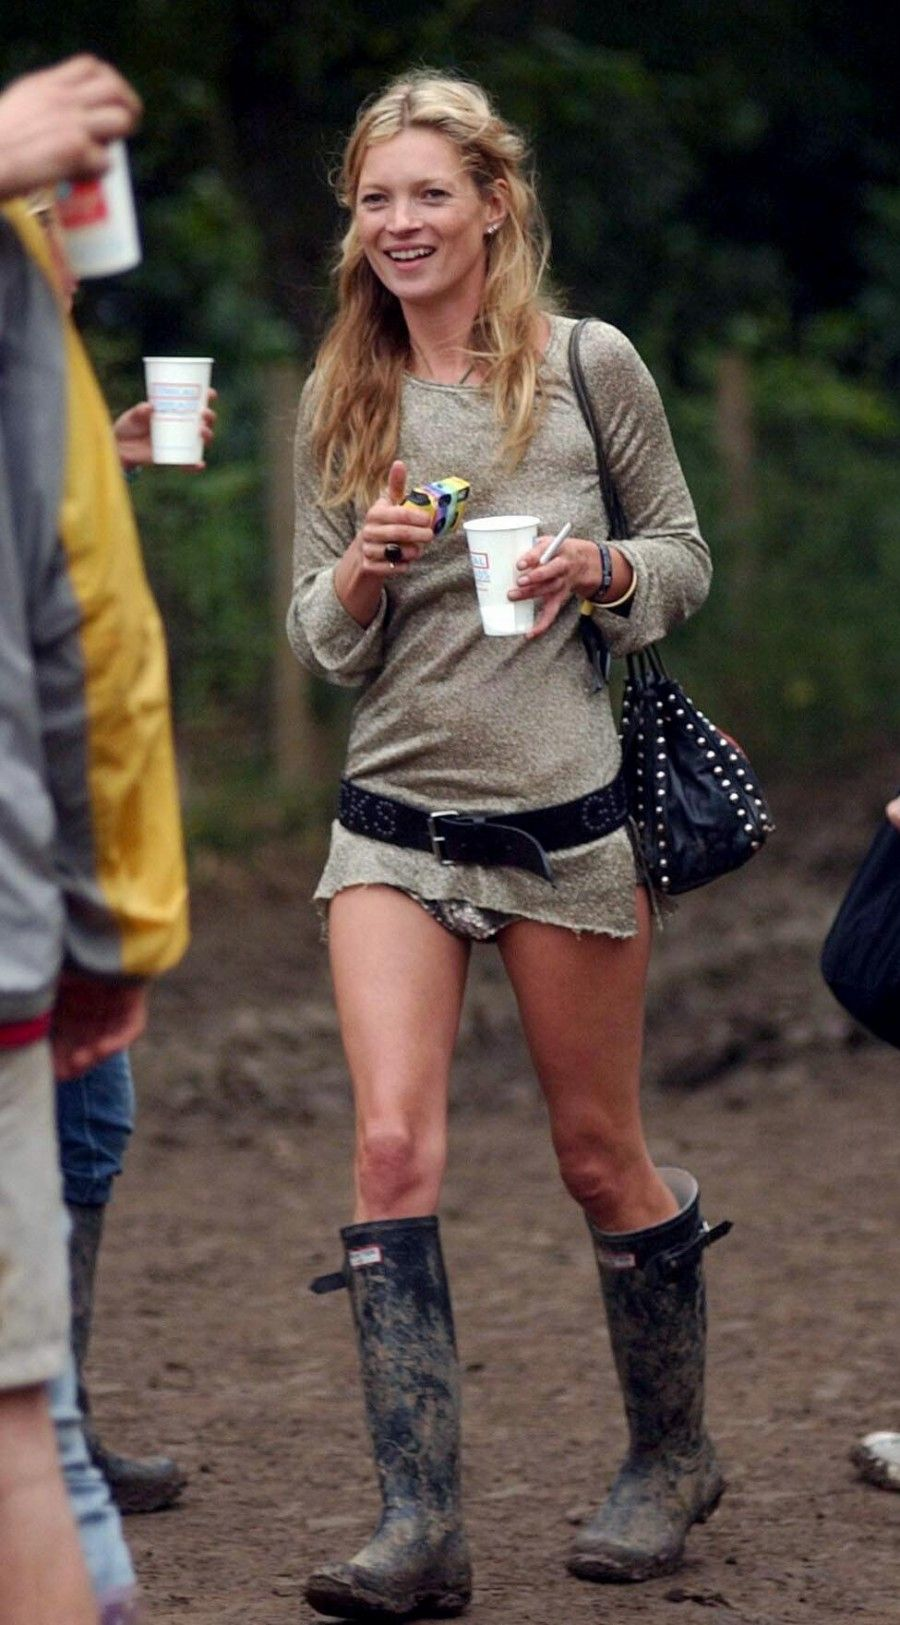 Mandatory Credit: Photo by Anthony Devlin / Rex Features ( 527591a ) Kate Moss GLASTONBURY FESTIVAL, BRITAIN - 25 JUN 2005